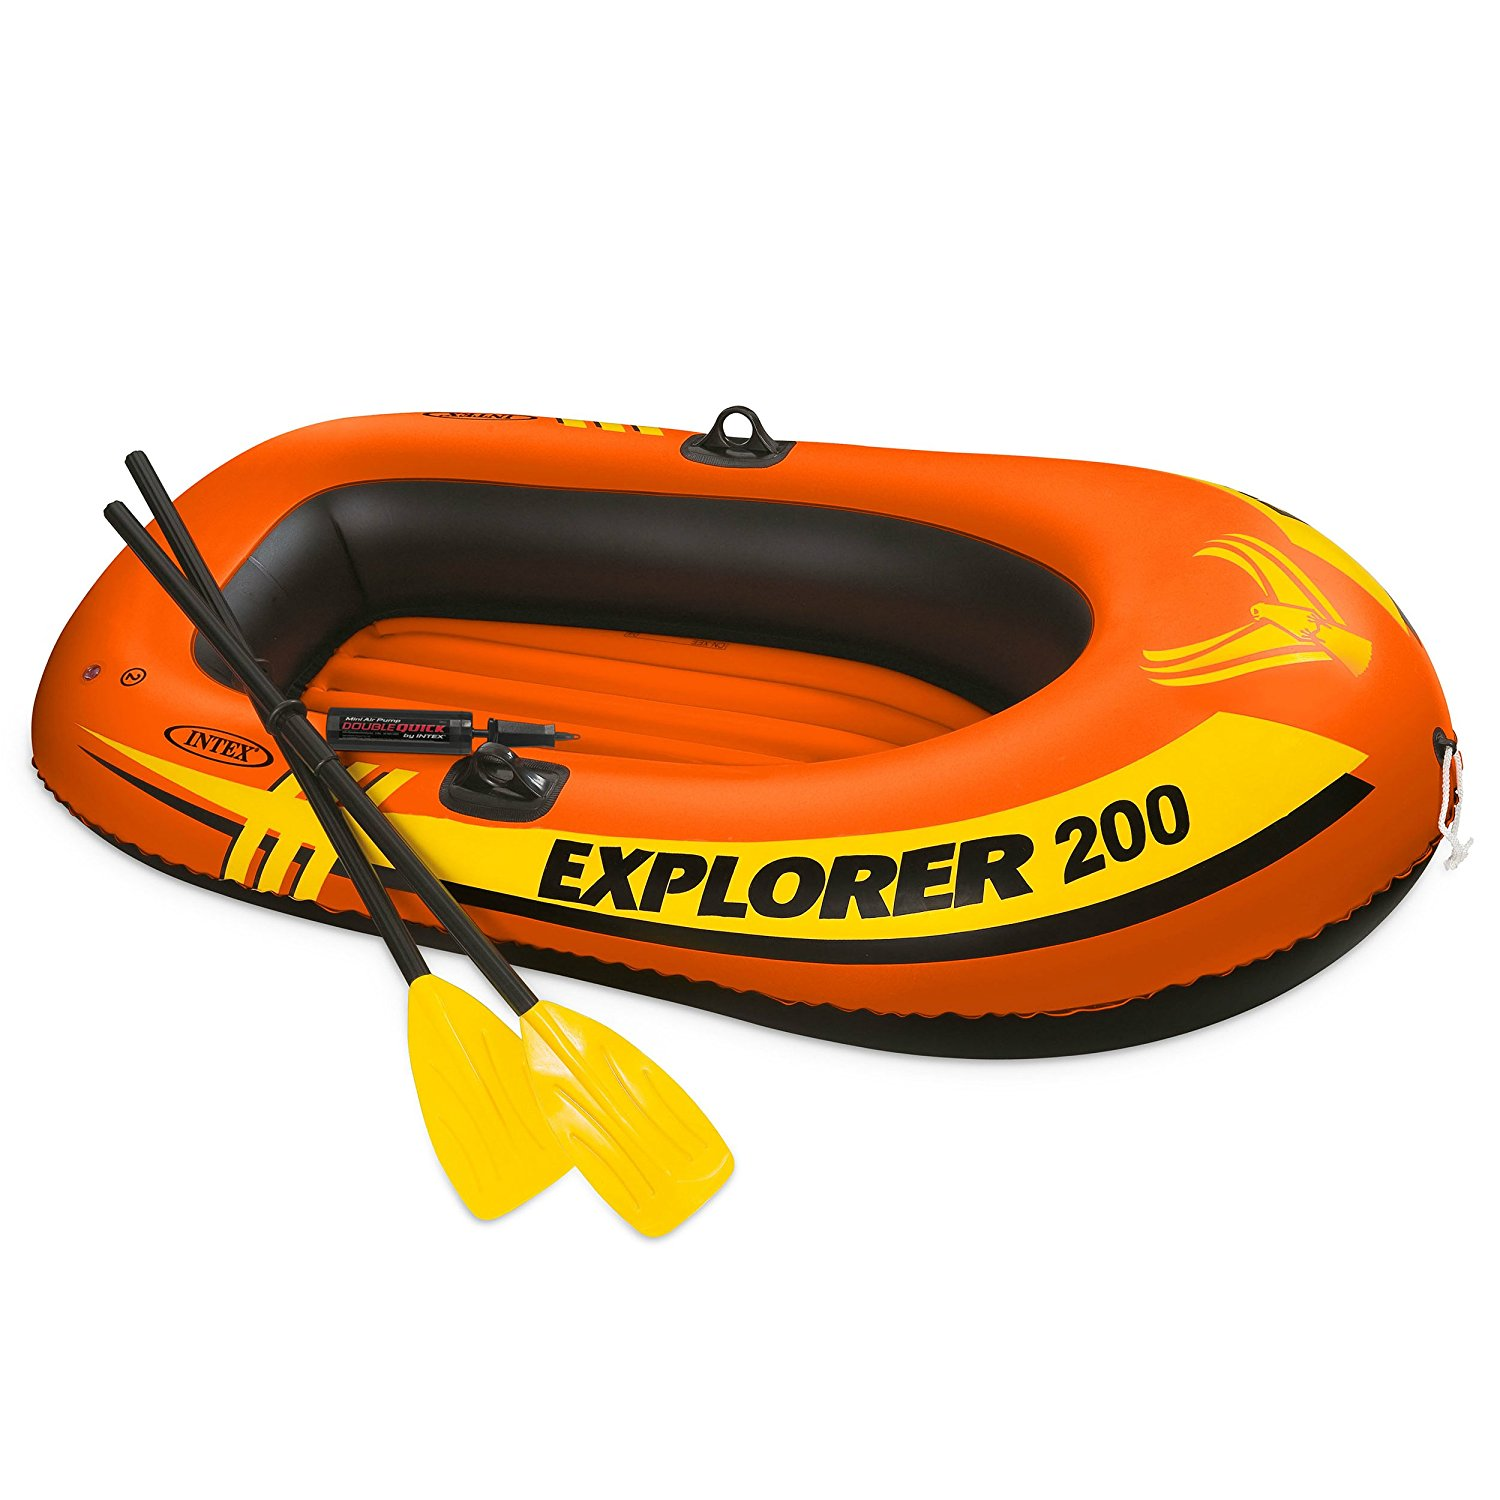 Explorer 200, 2-Person Inflatable Boat Set with French Oars and Mini Air Pump, 2-person inflatable boat set designed for... by